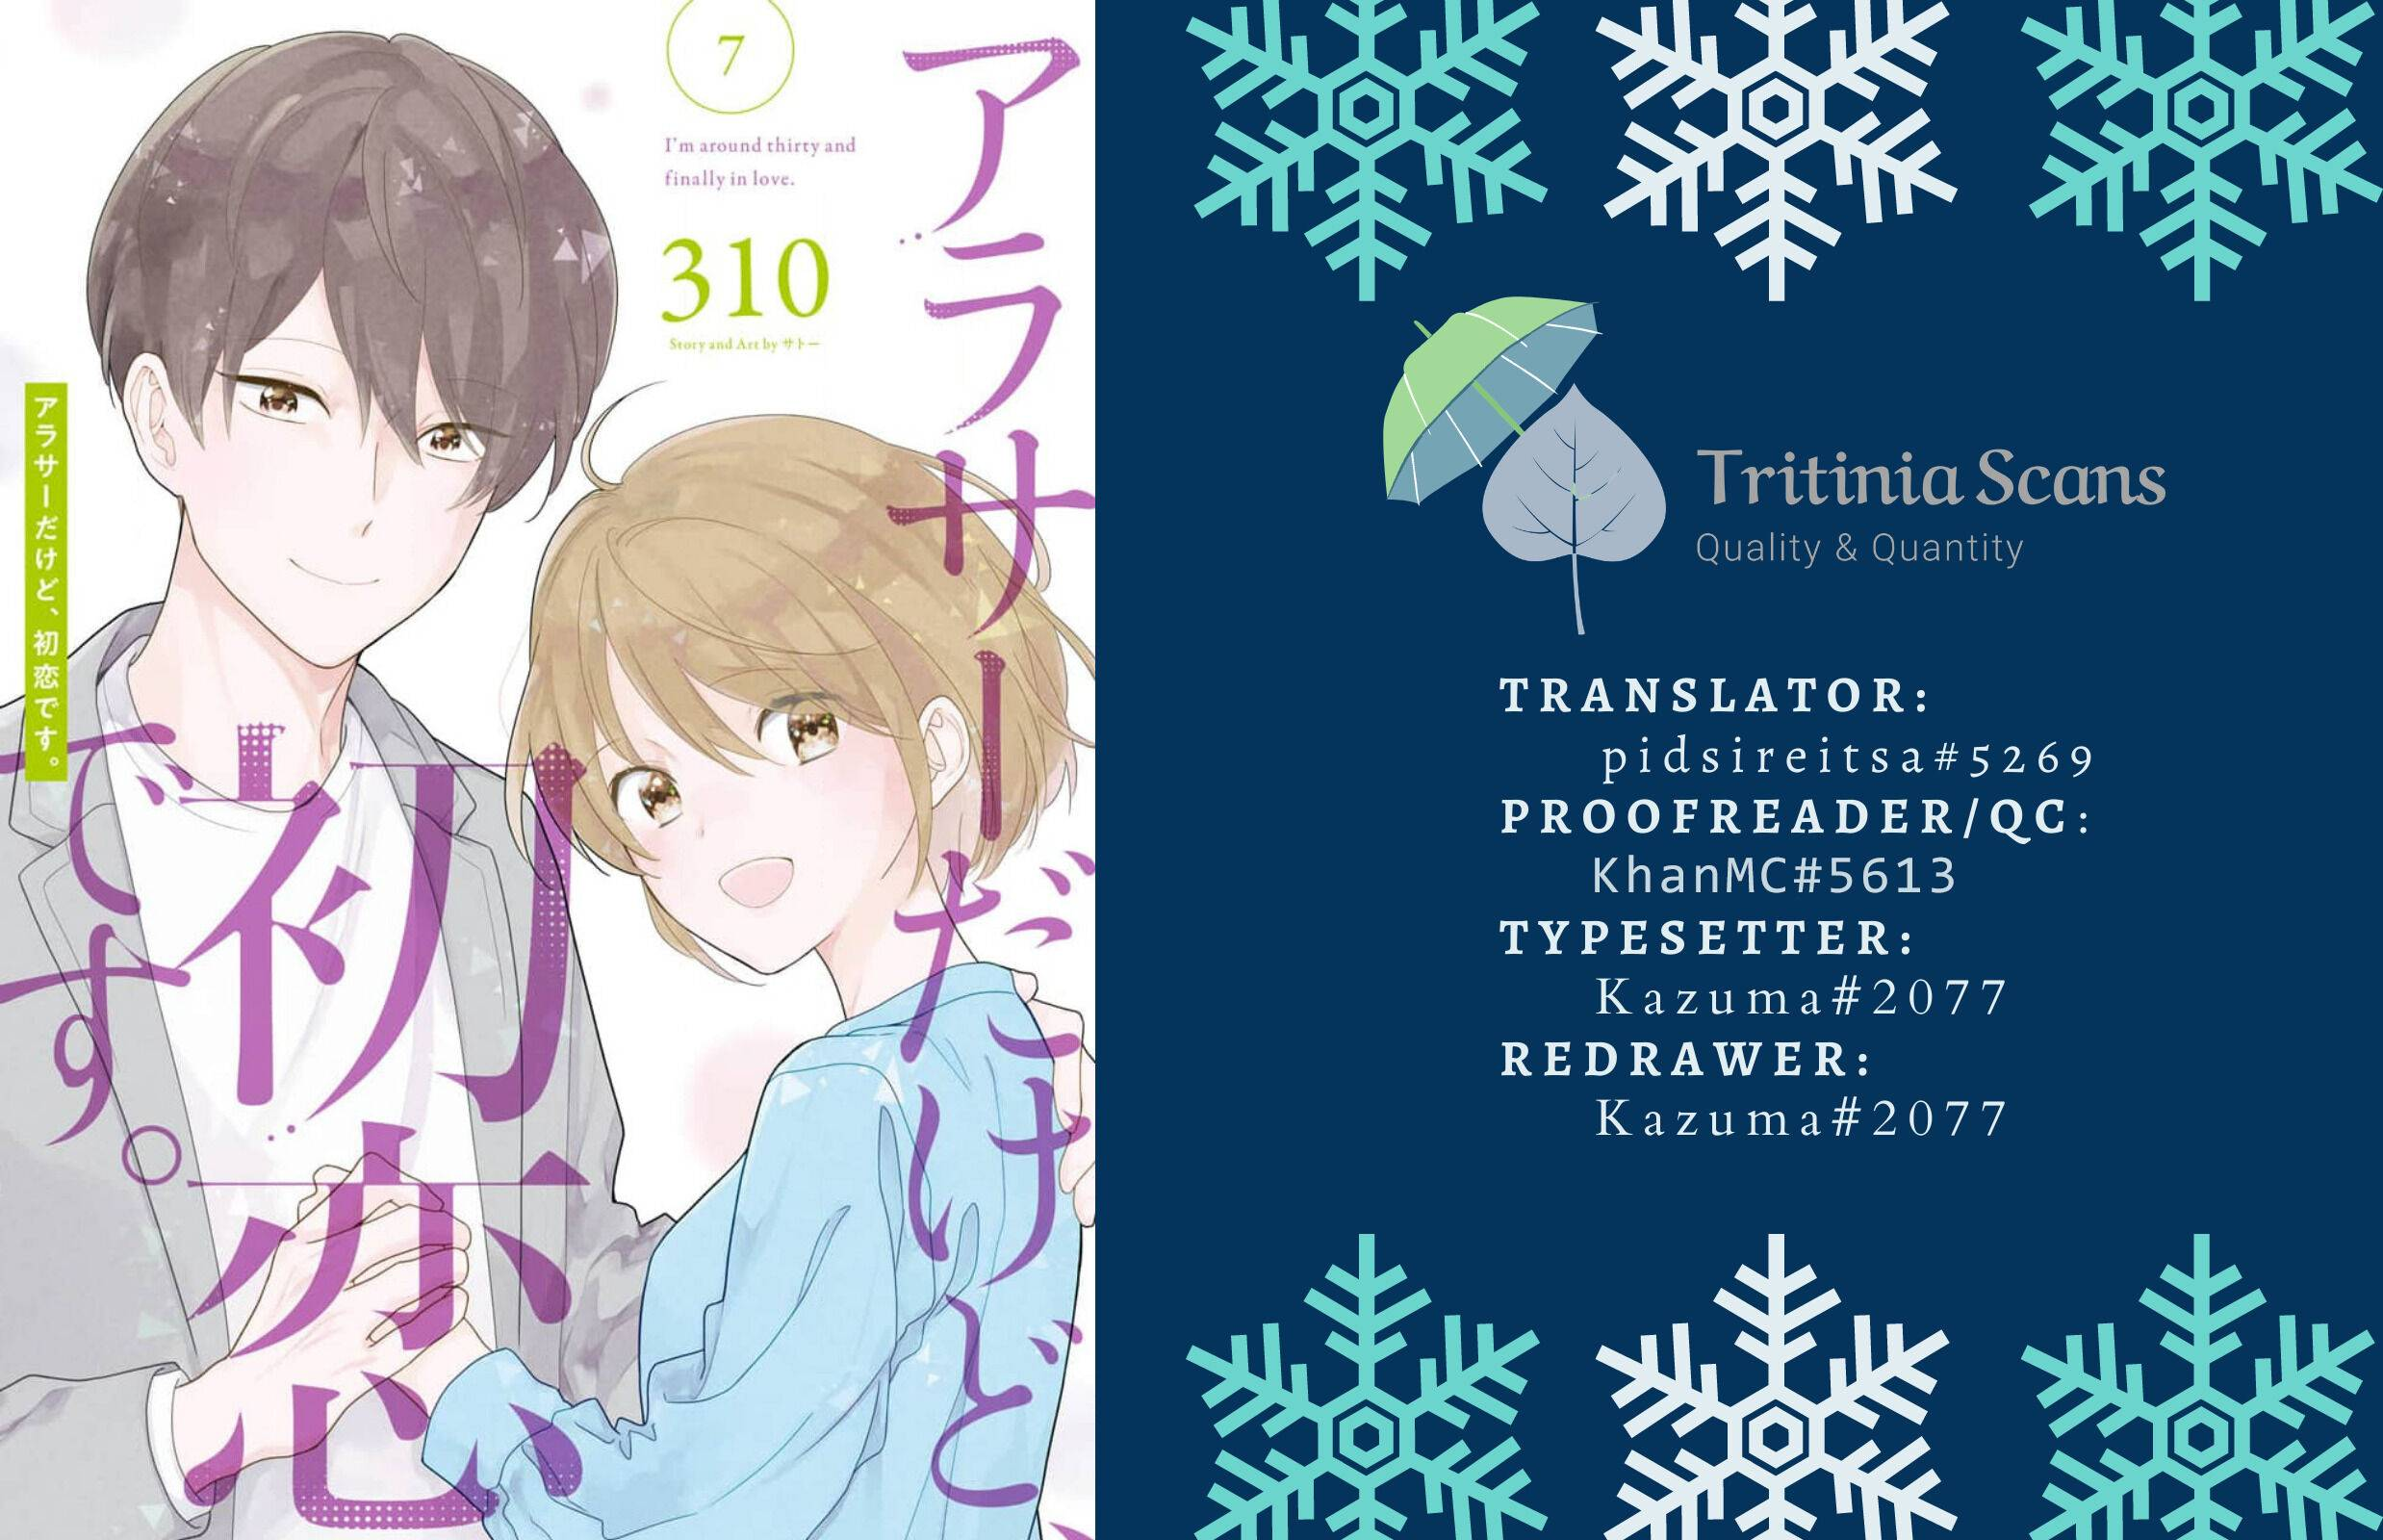 I'm Around Thirty And Finally In Love - chapter 59 - #1